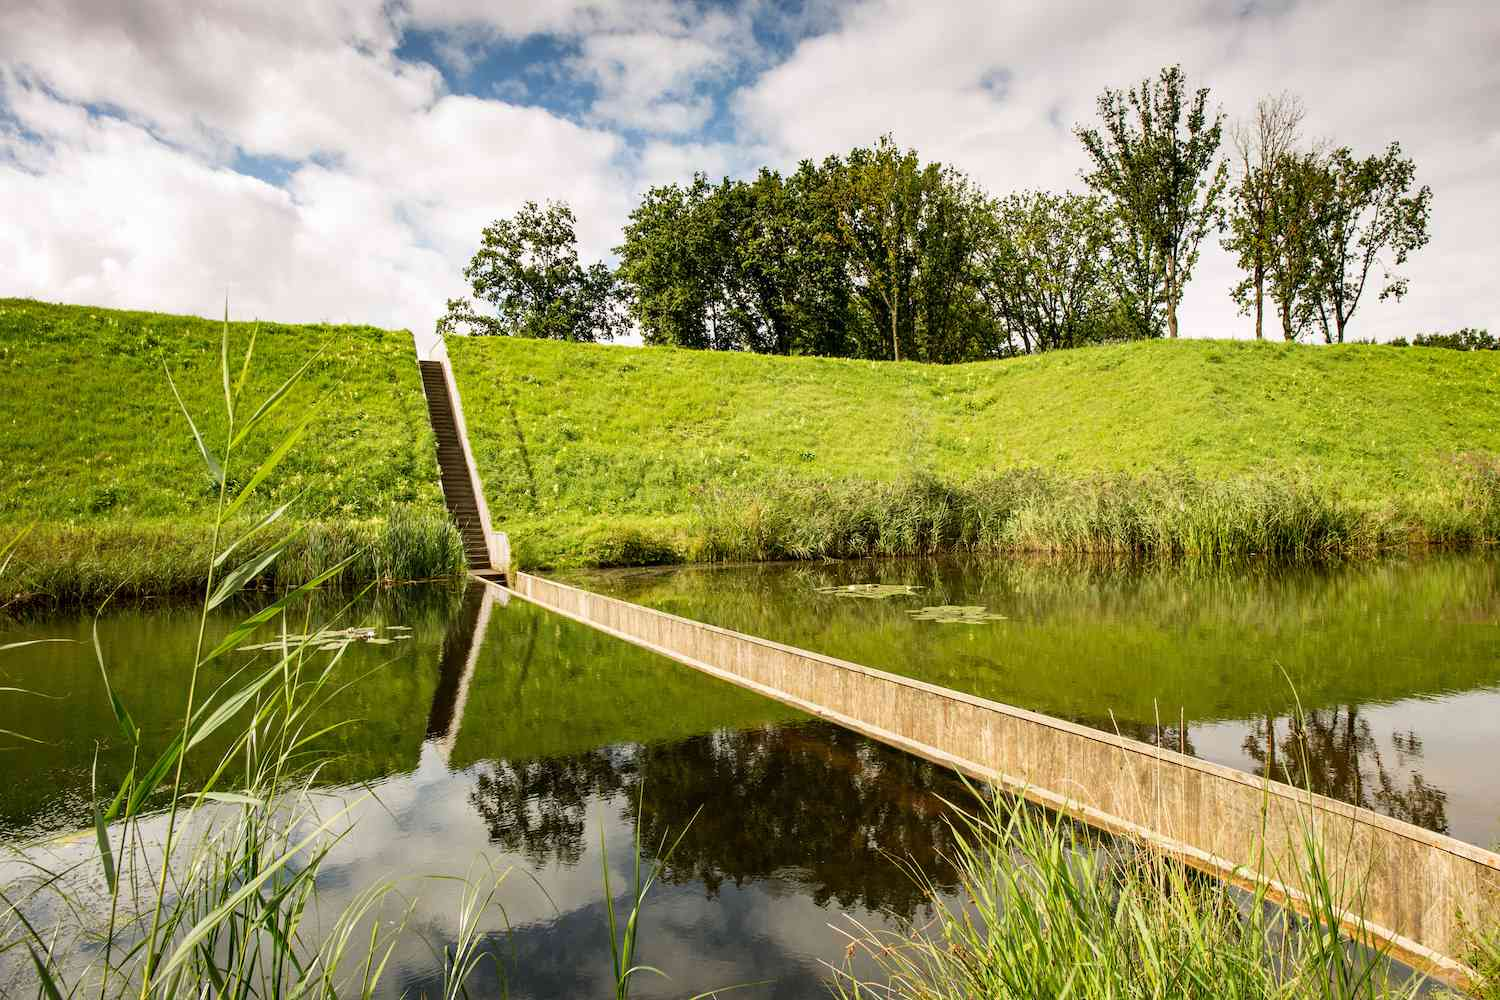 The Moses Bridge cuts through the water of a moat in the Netherlands